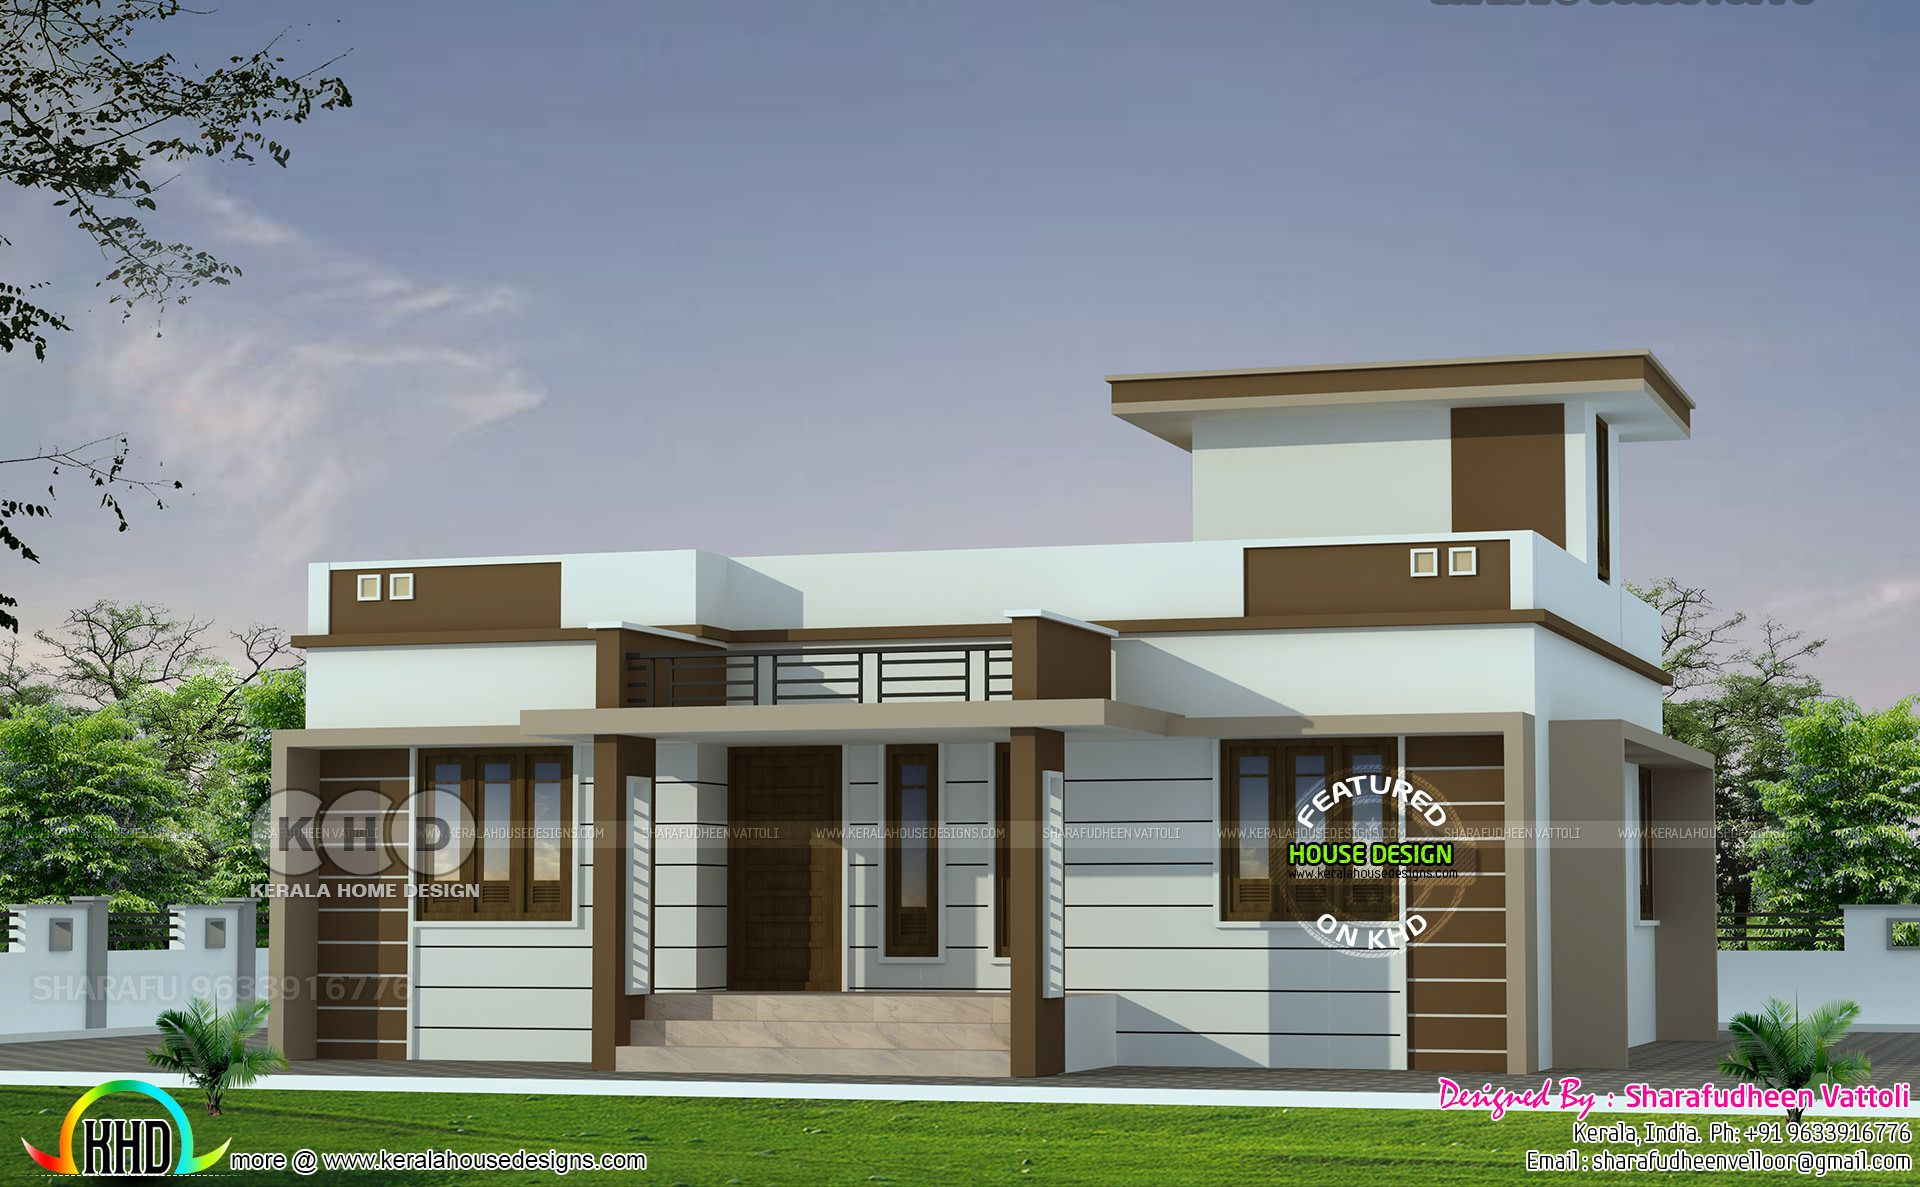 3 Bhk In 1086 Sq Ft Budget Home Design In 2019 House